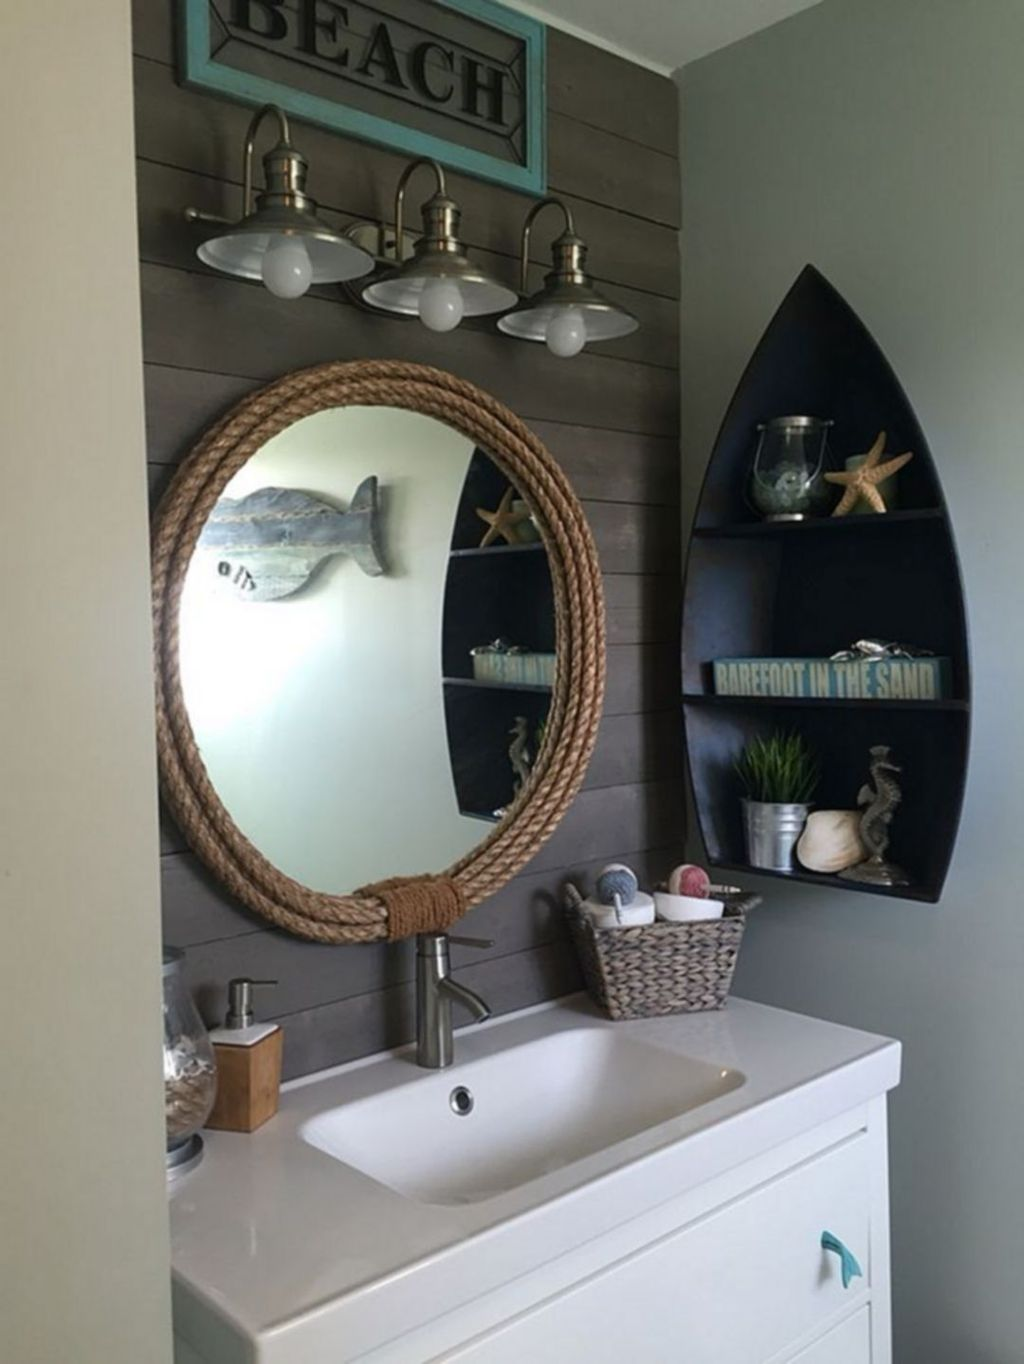 popular mermaid bathroom decor ideas11 #mermaidbathroomdecor